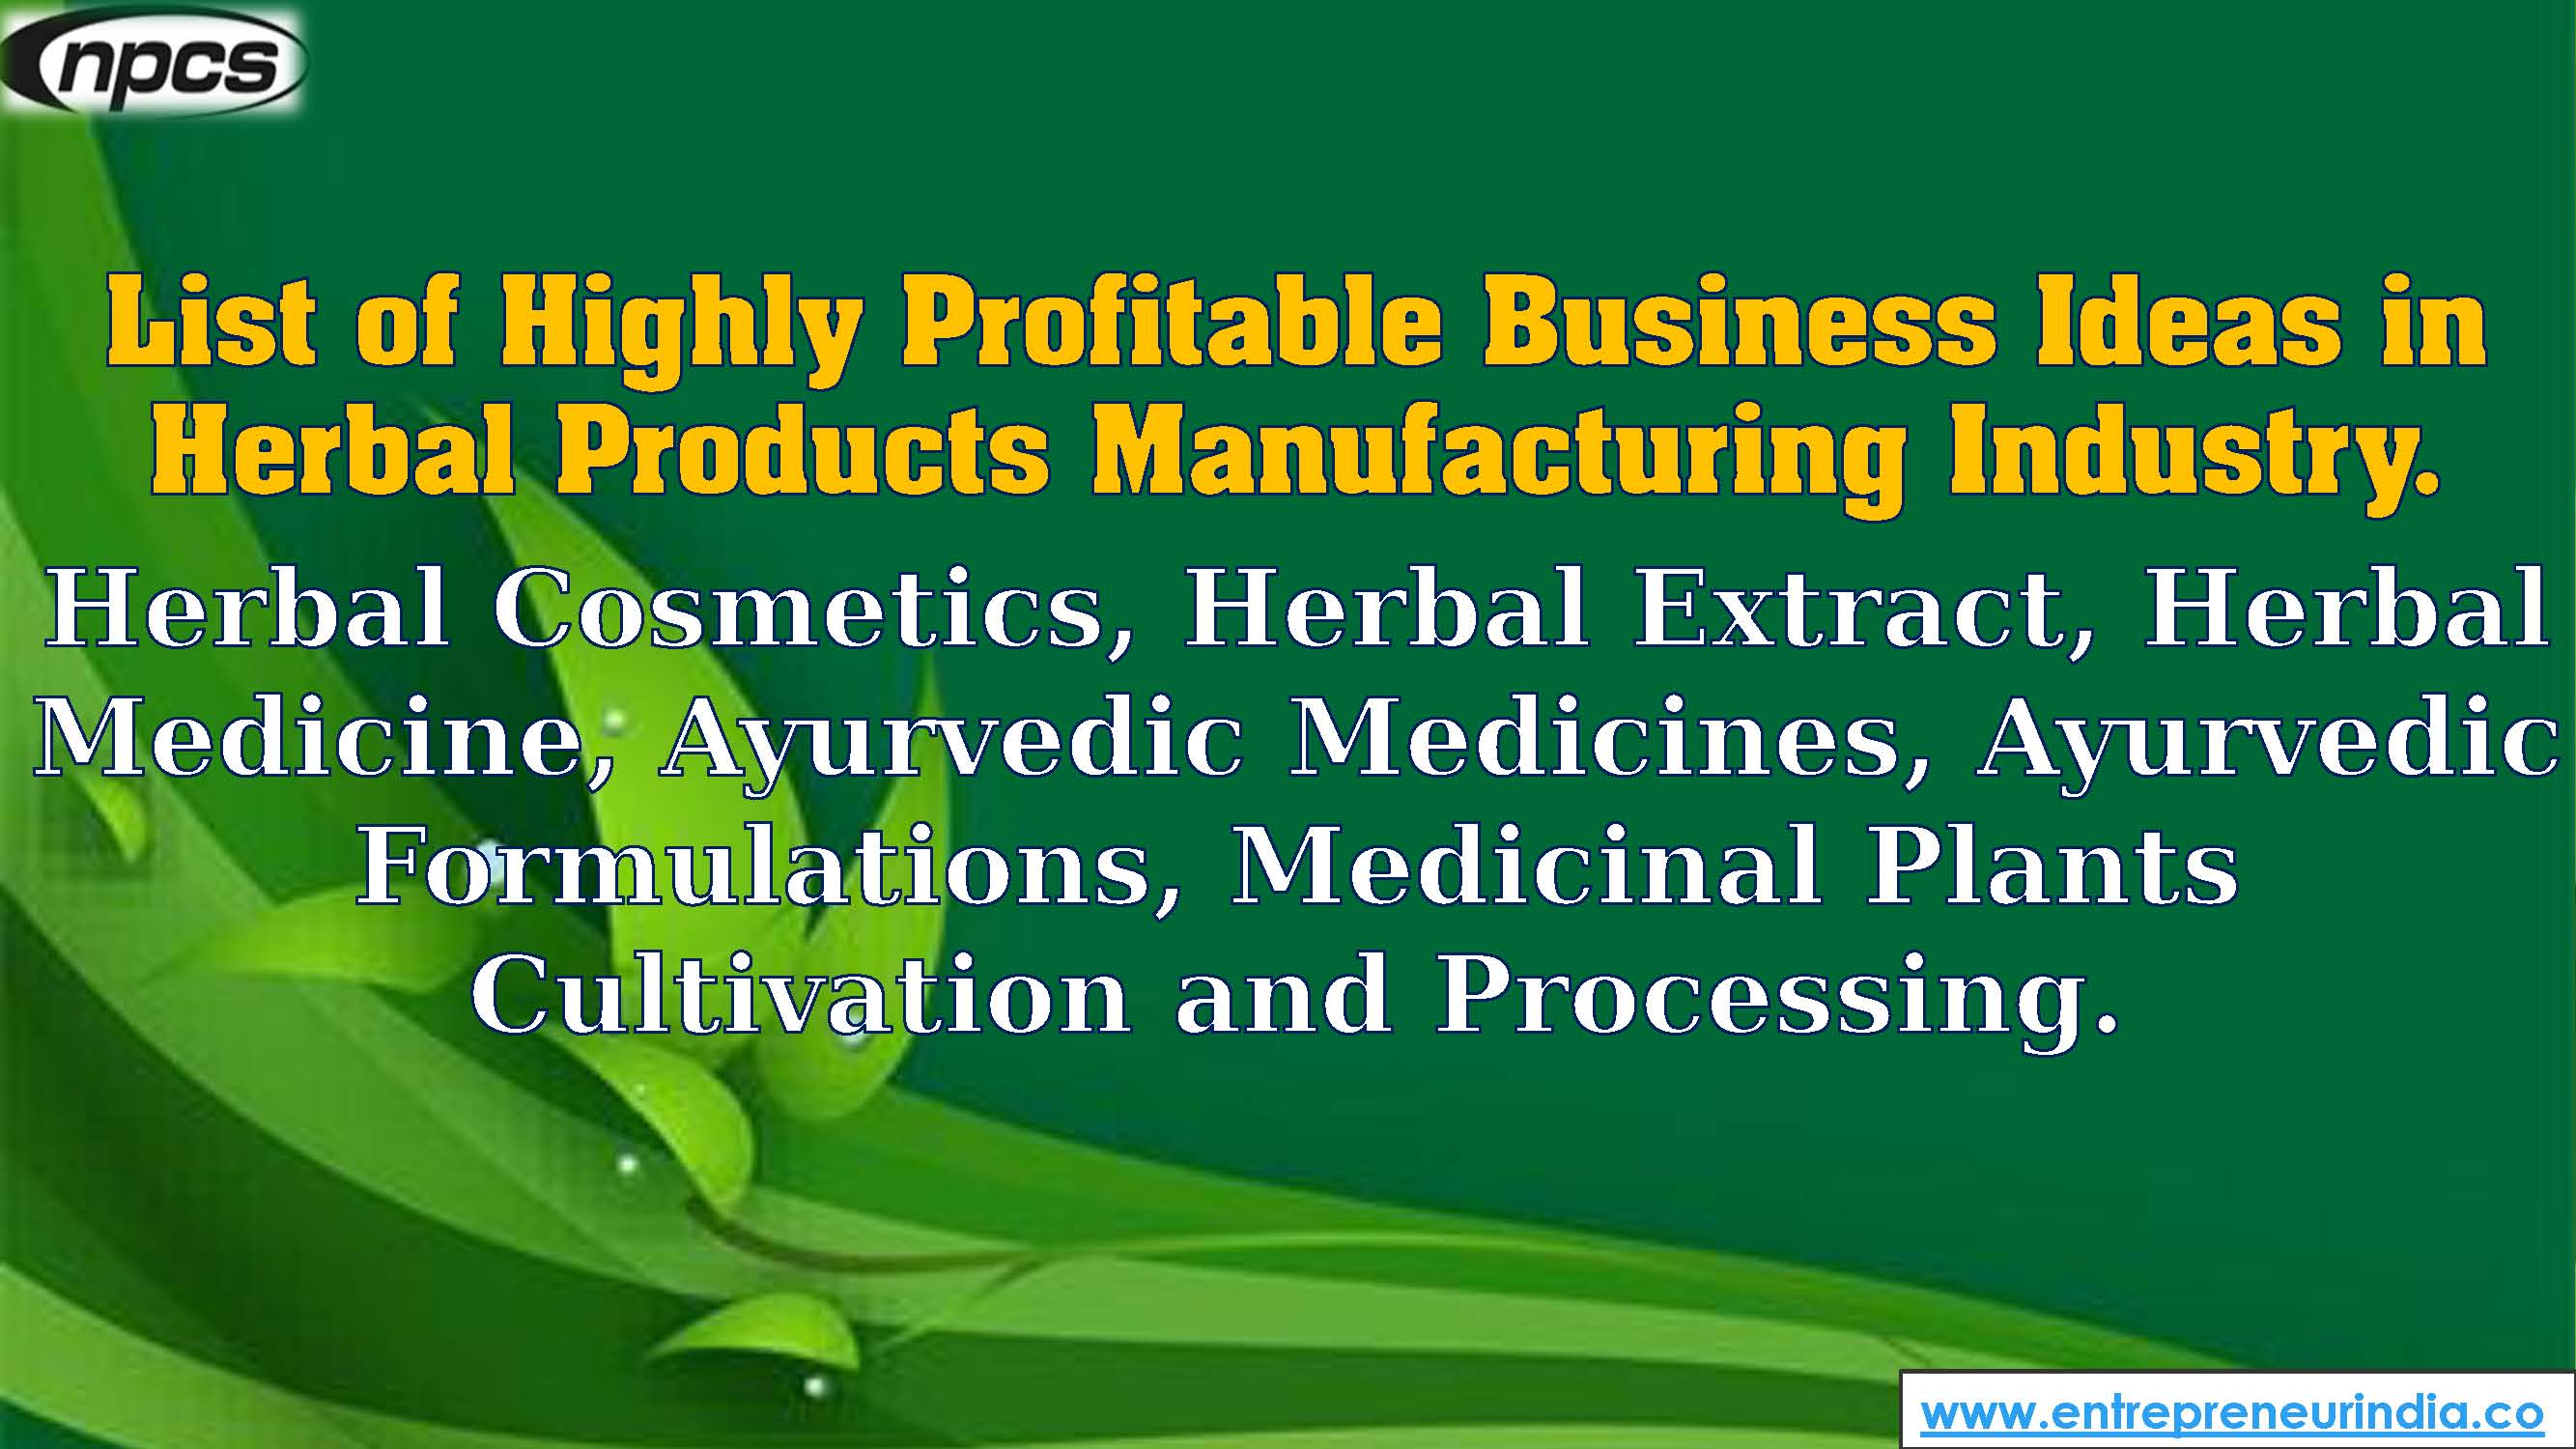 List of Highly Profitable Business Ideas in Herbal Products